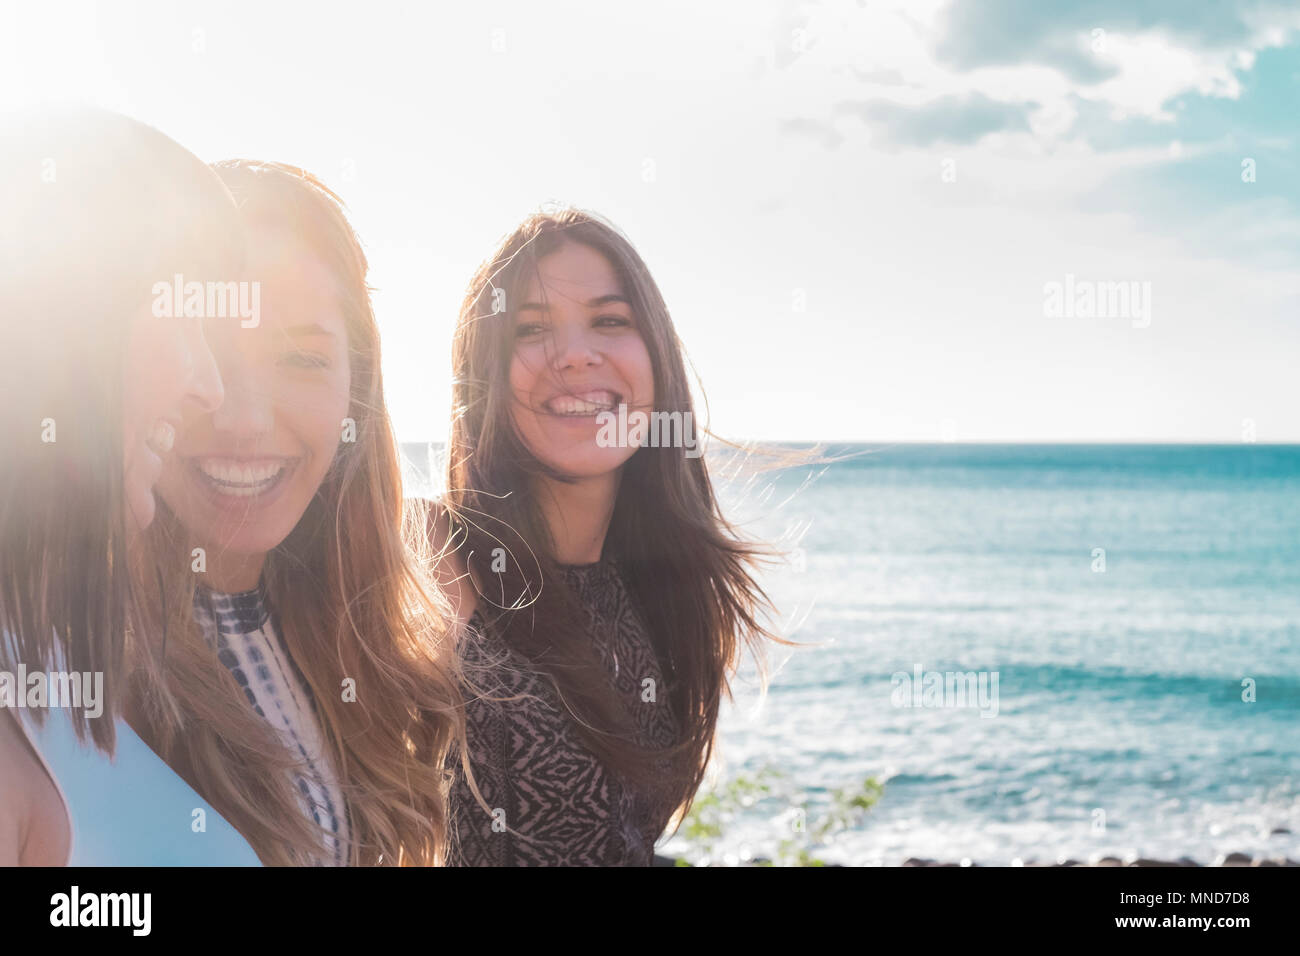 3 young women walk on the beach looking at each other, laughing and spending free time together. on a nice summer day. with sun and sea as a backgroun - Stock Image